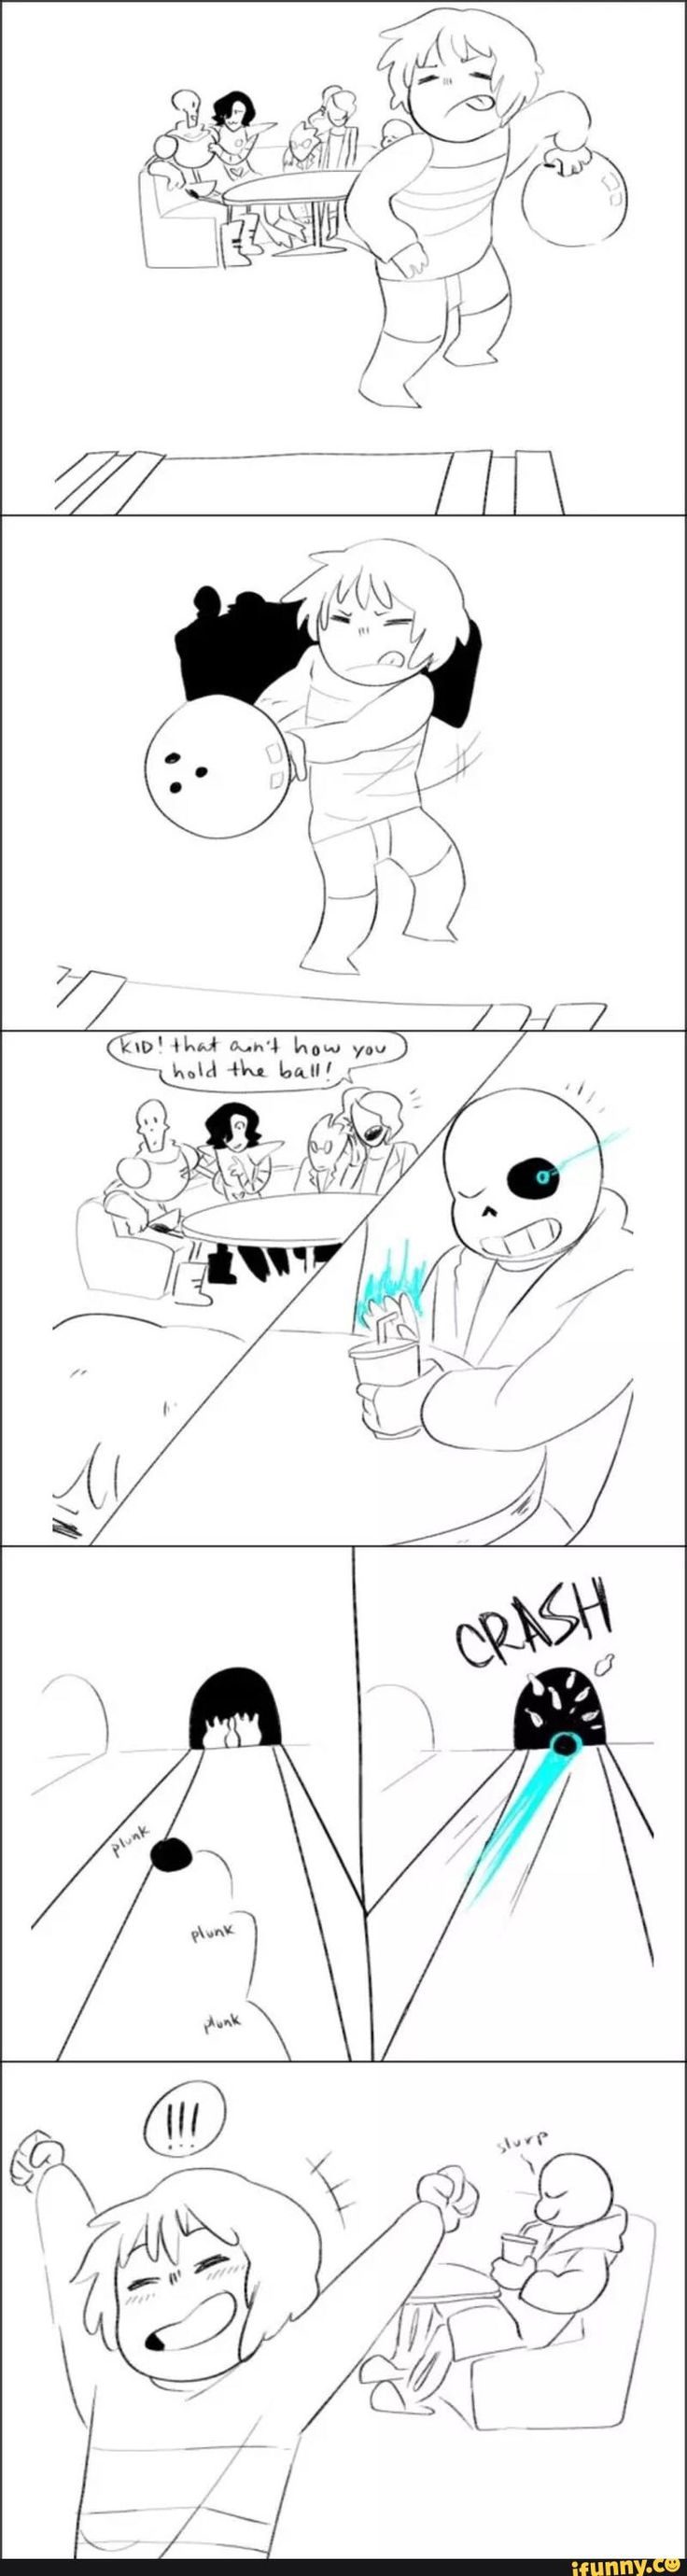 If Sans keeps doing things like these, Frisk will never feel what it is like to lose. Ever.